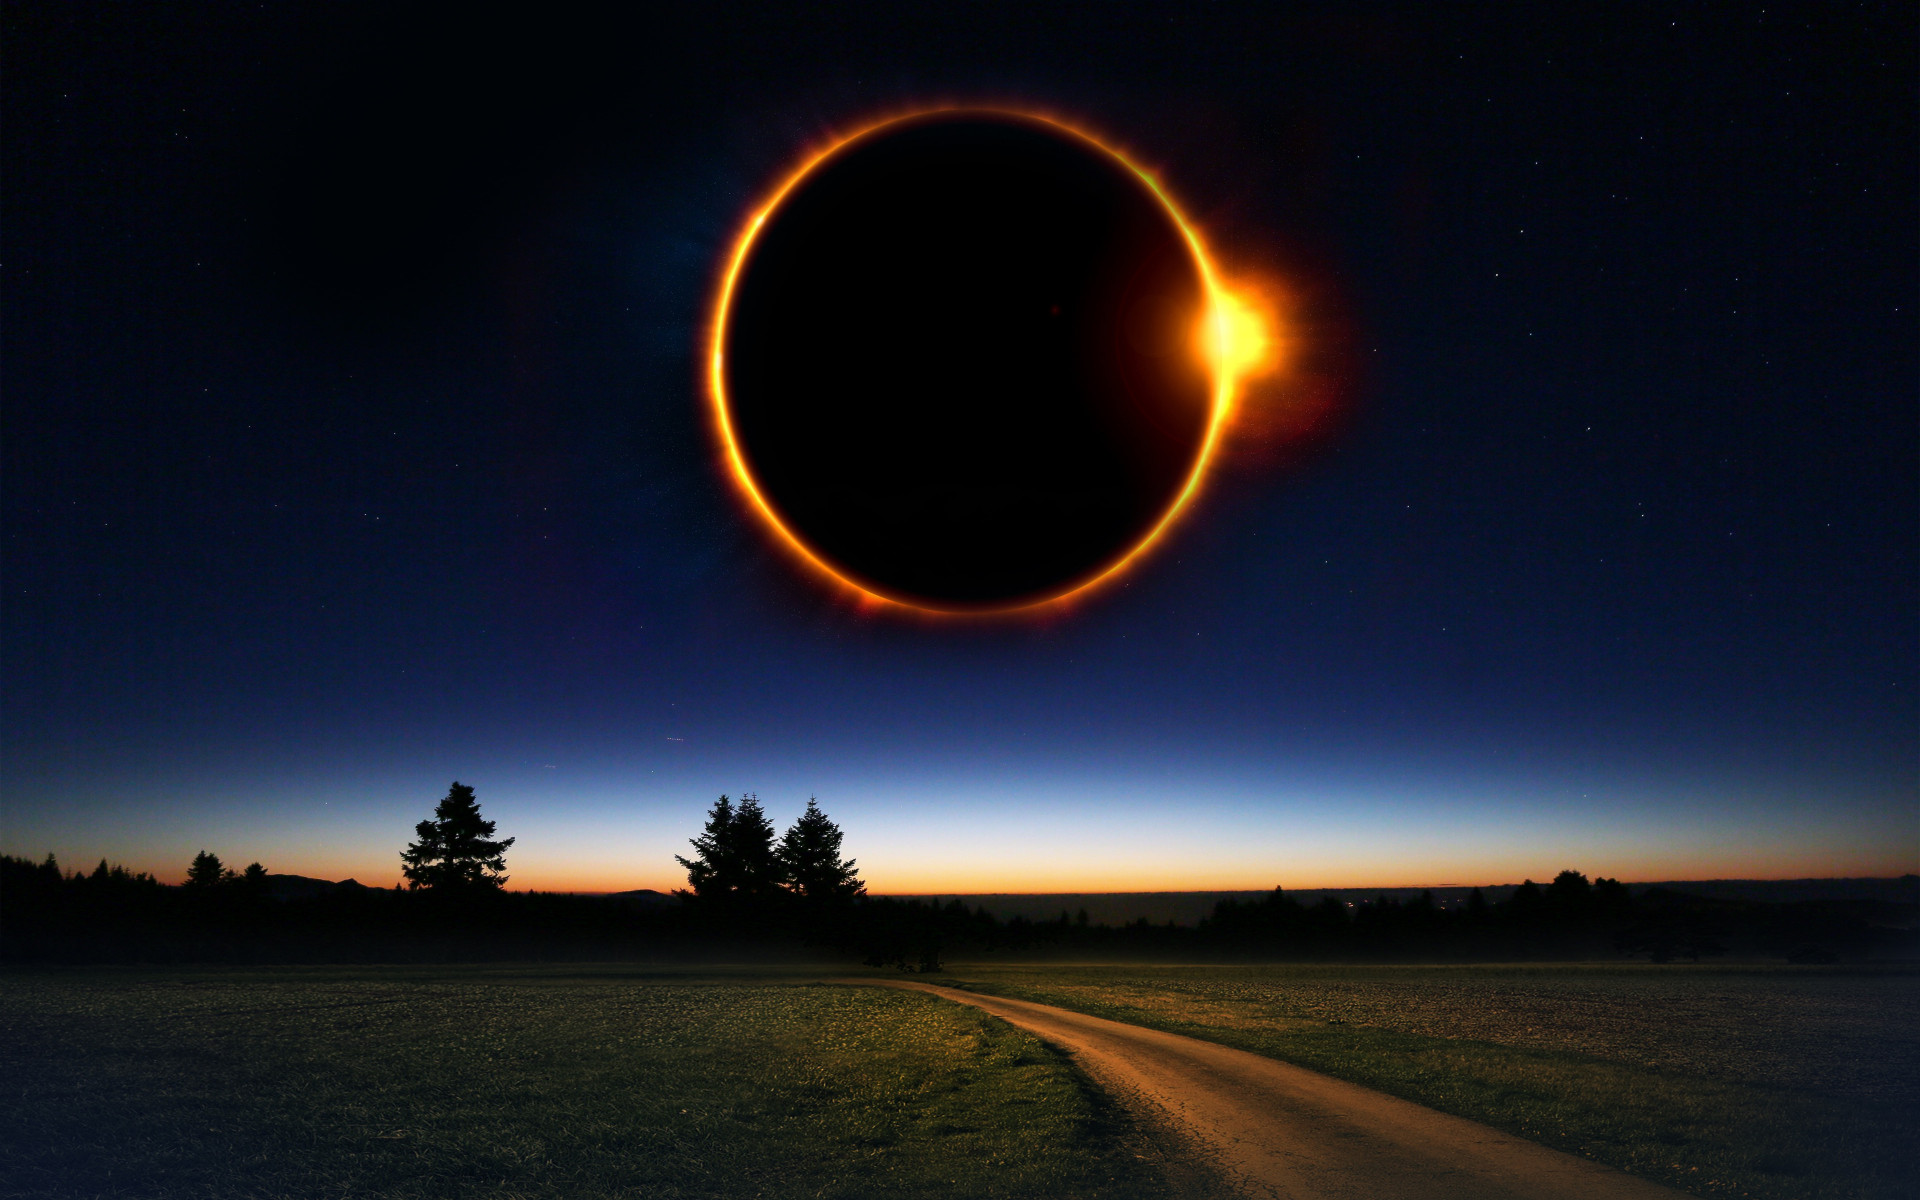 Fantasy solar eclipse wallpaper 1920x1200